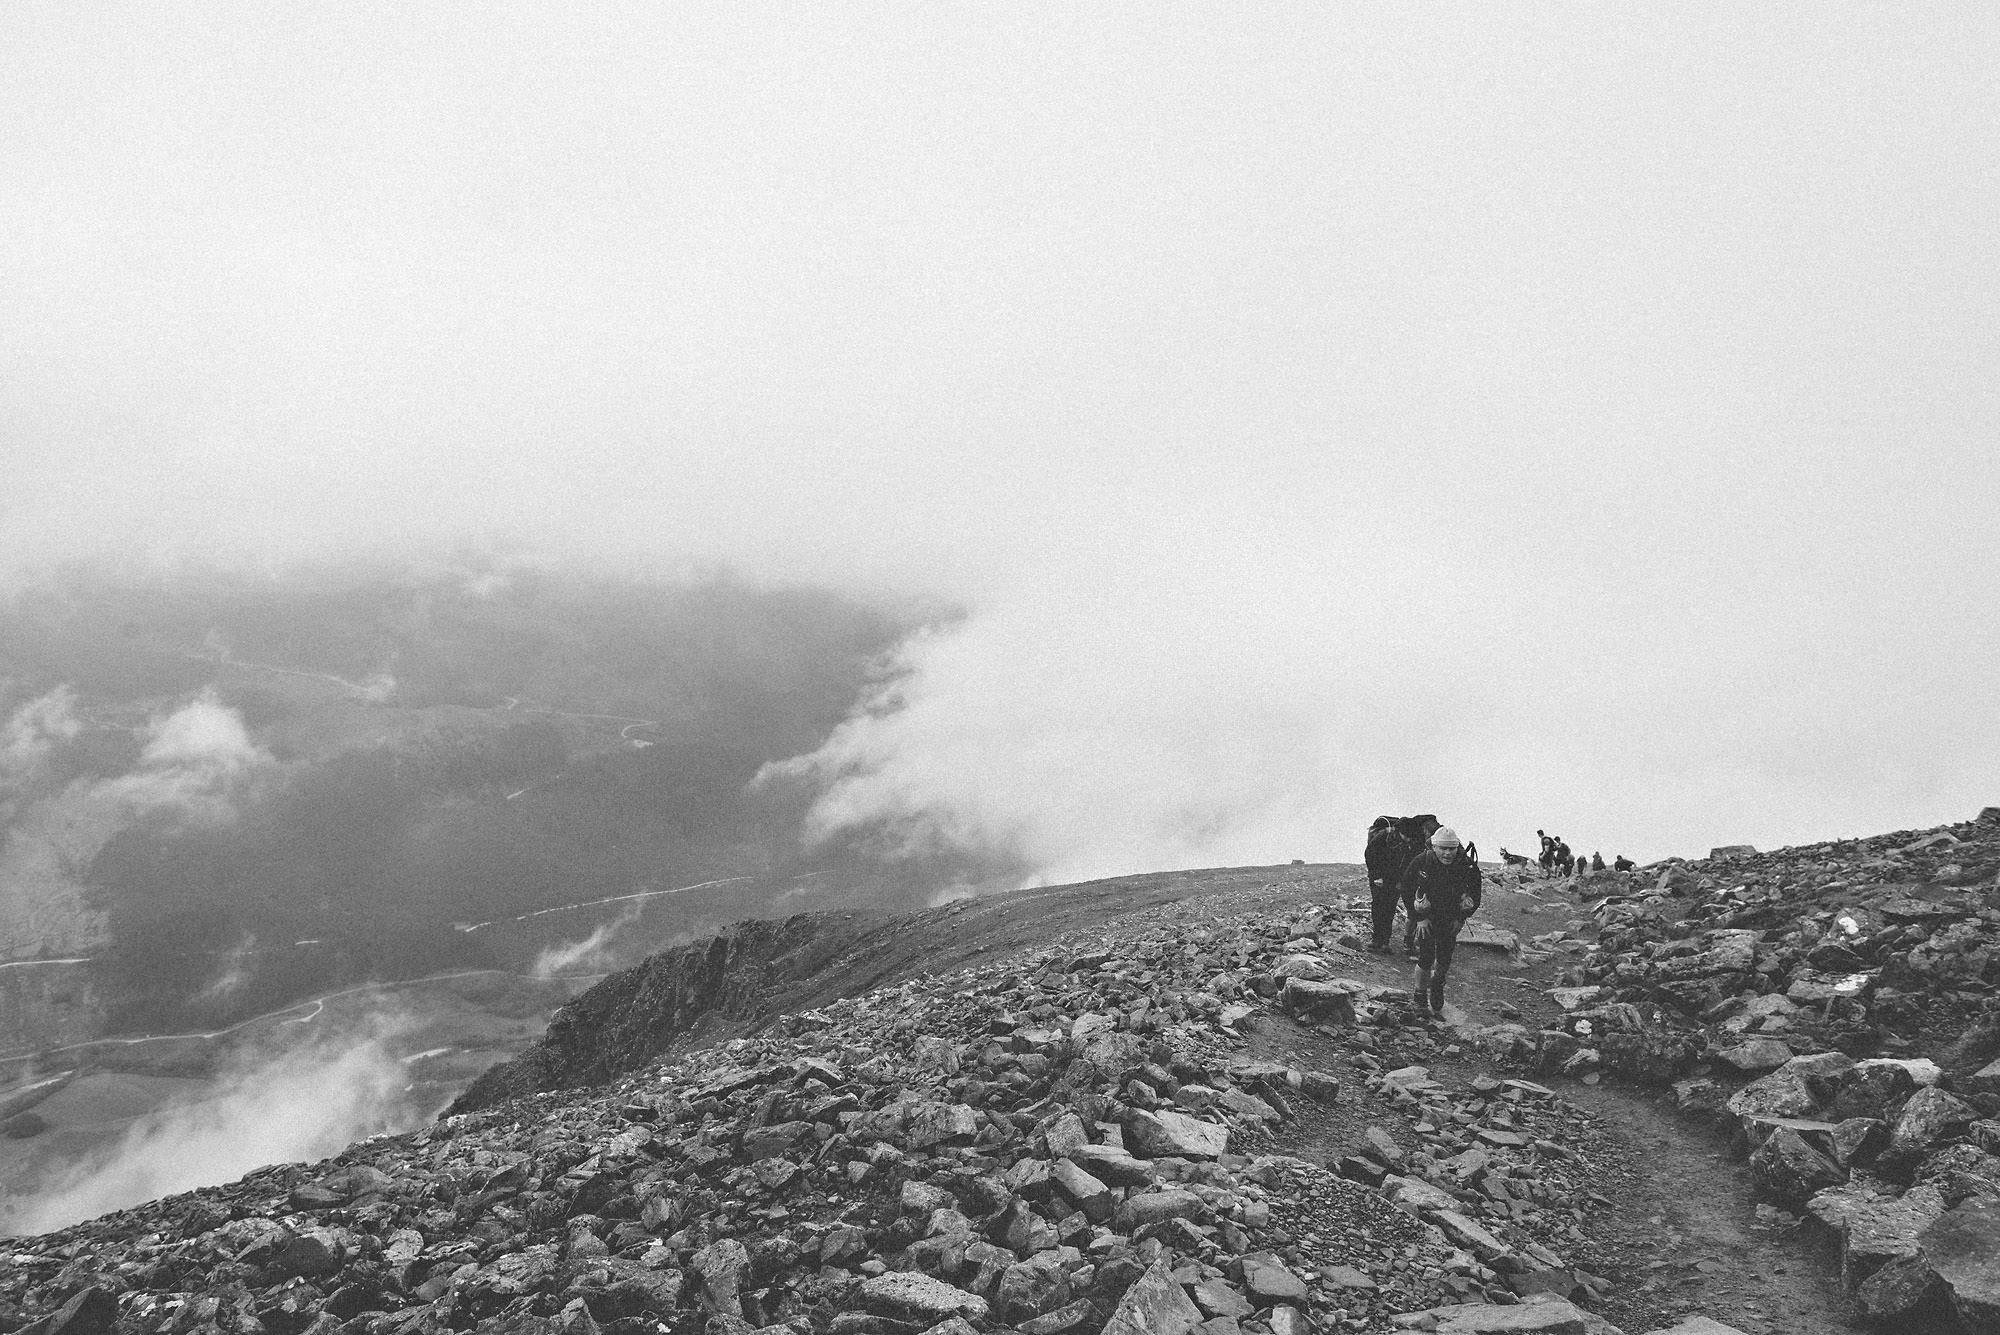 Climbers hiking atop Ben Nevis in Scotland